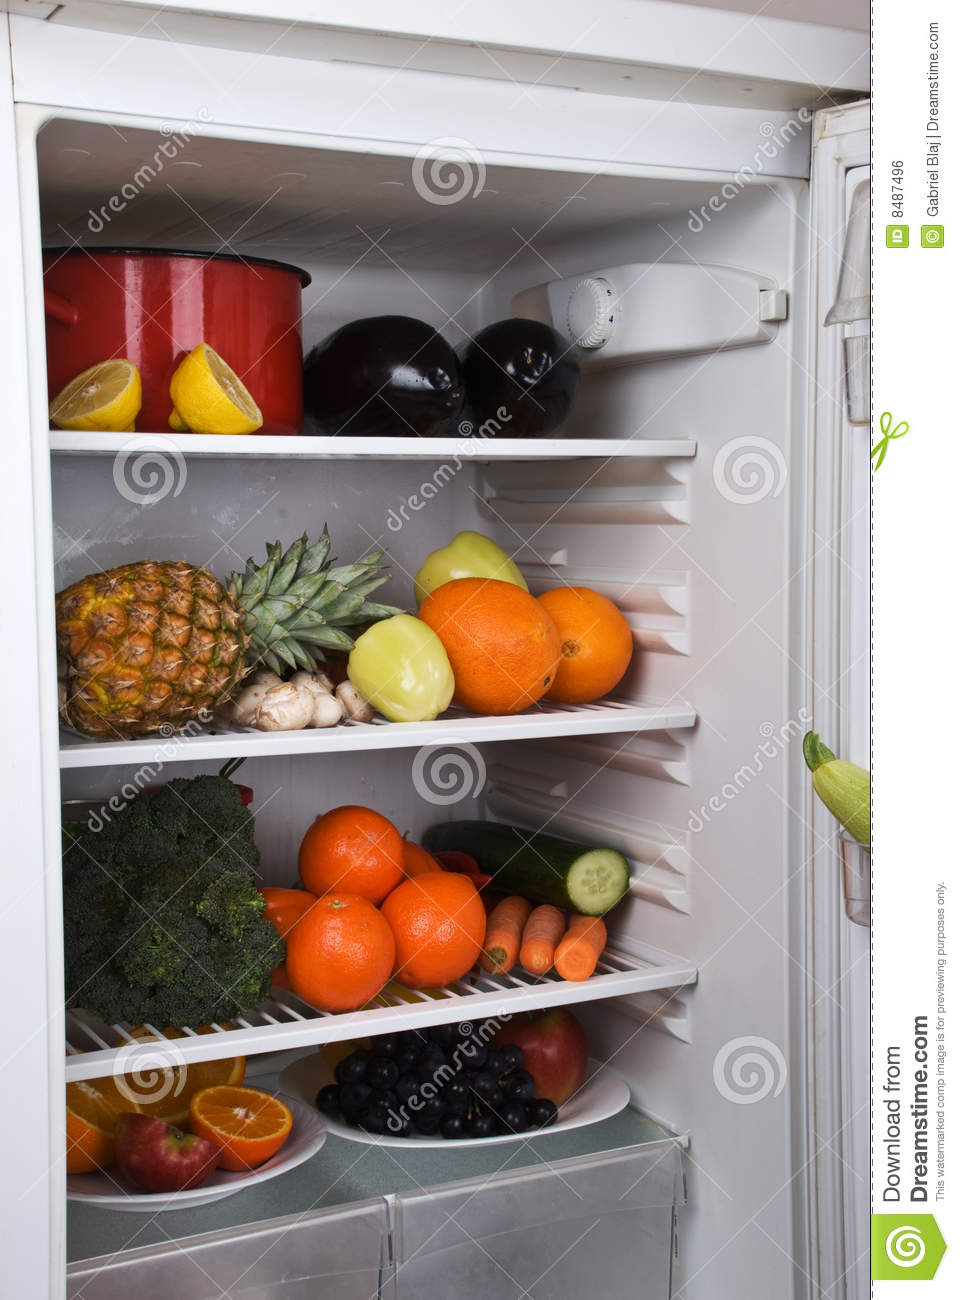 Full Fridge With Fruits And Vegetables Stock Photo Image